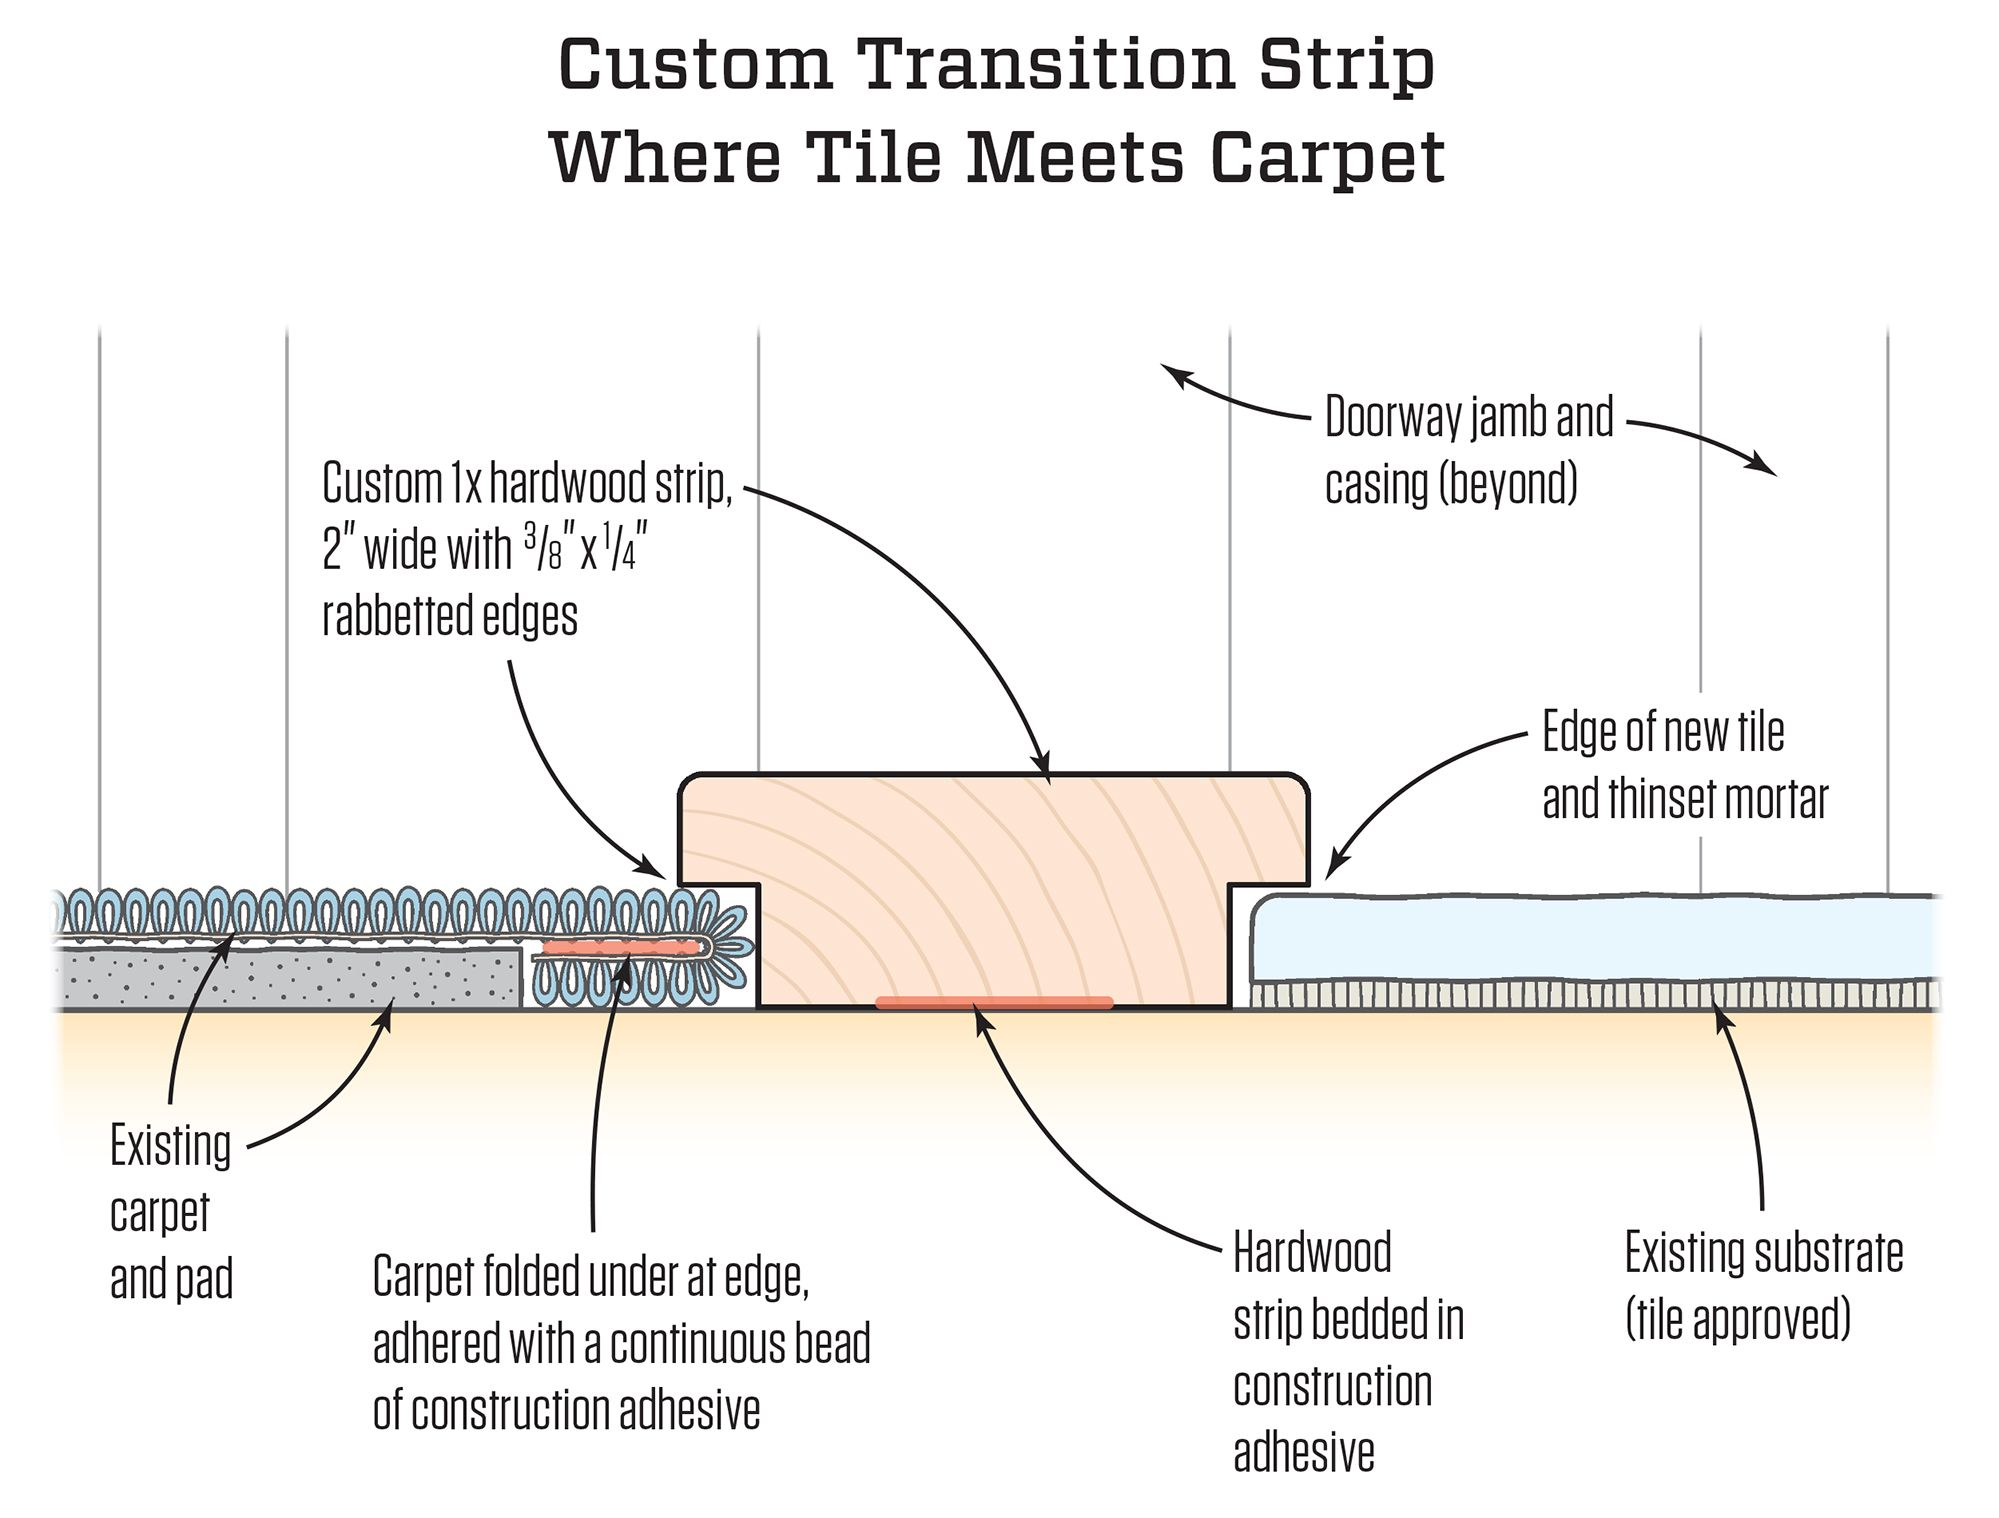 How Should You Detail The Edge Of A Tile Floor Where It Meets A Carpet Transition Strips Carpet To Tile Transition Strip Floors